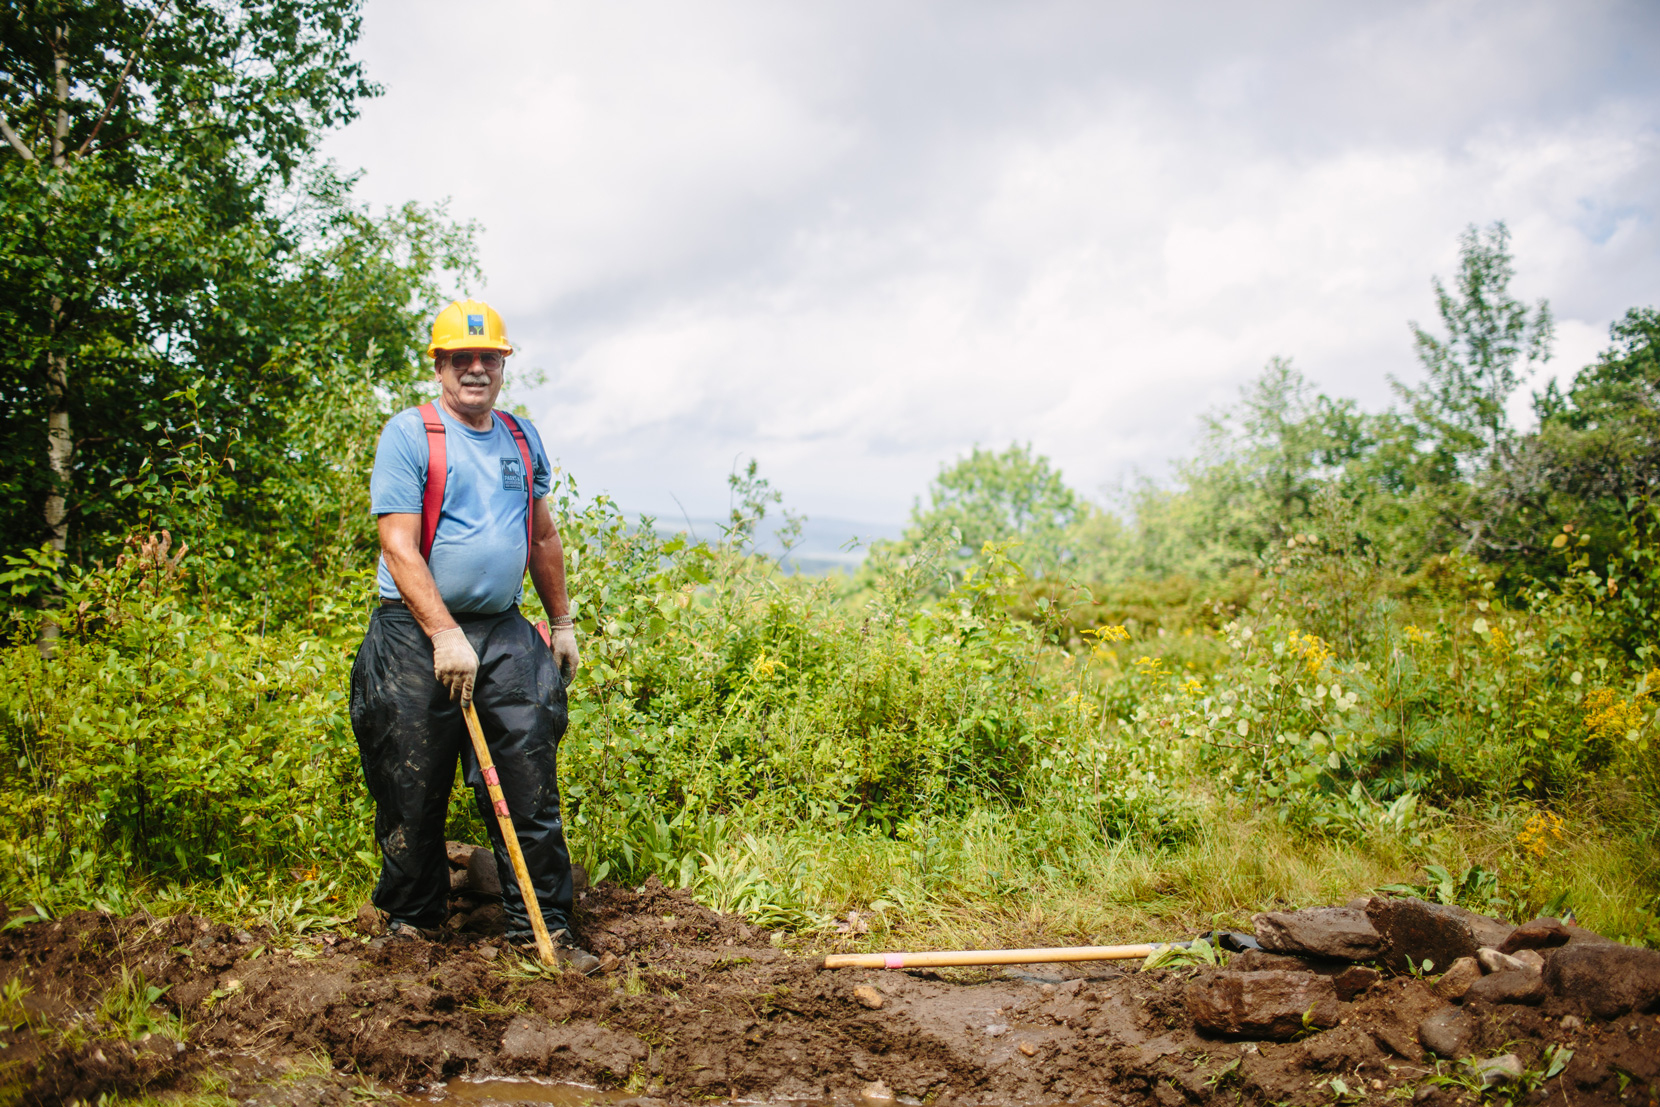 Volunteer Bob Humphrey is also a member of the Cardigan Highlanders Volunteer Trail Crew